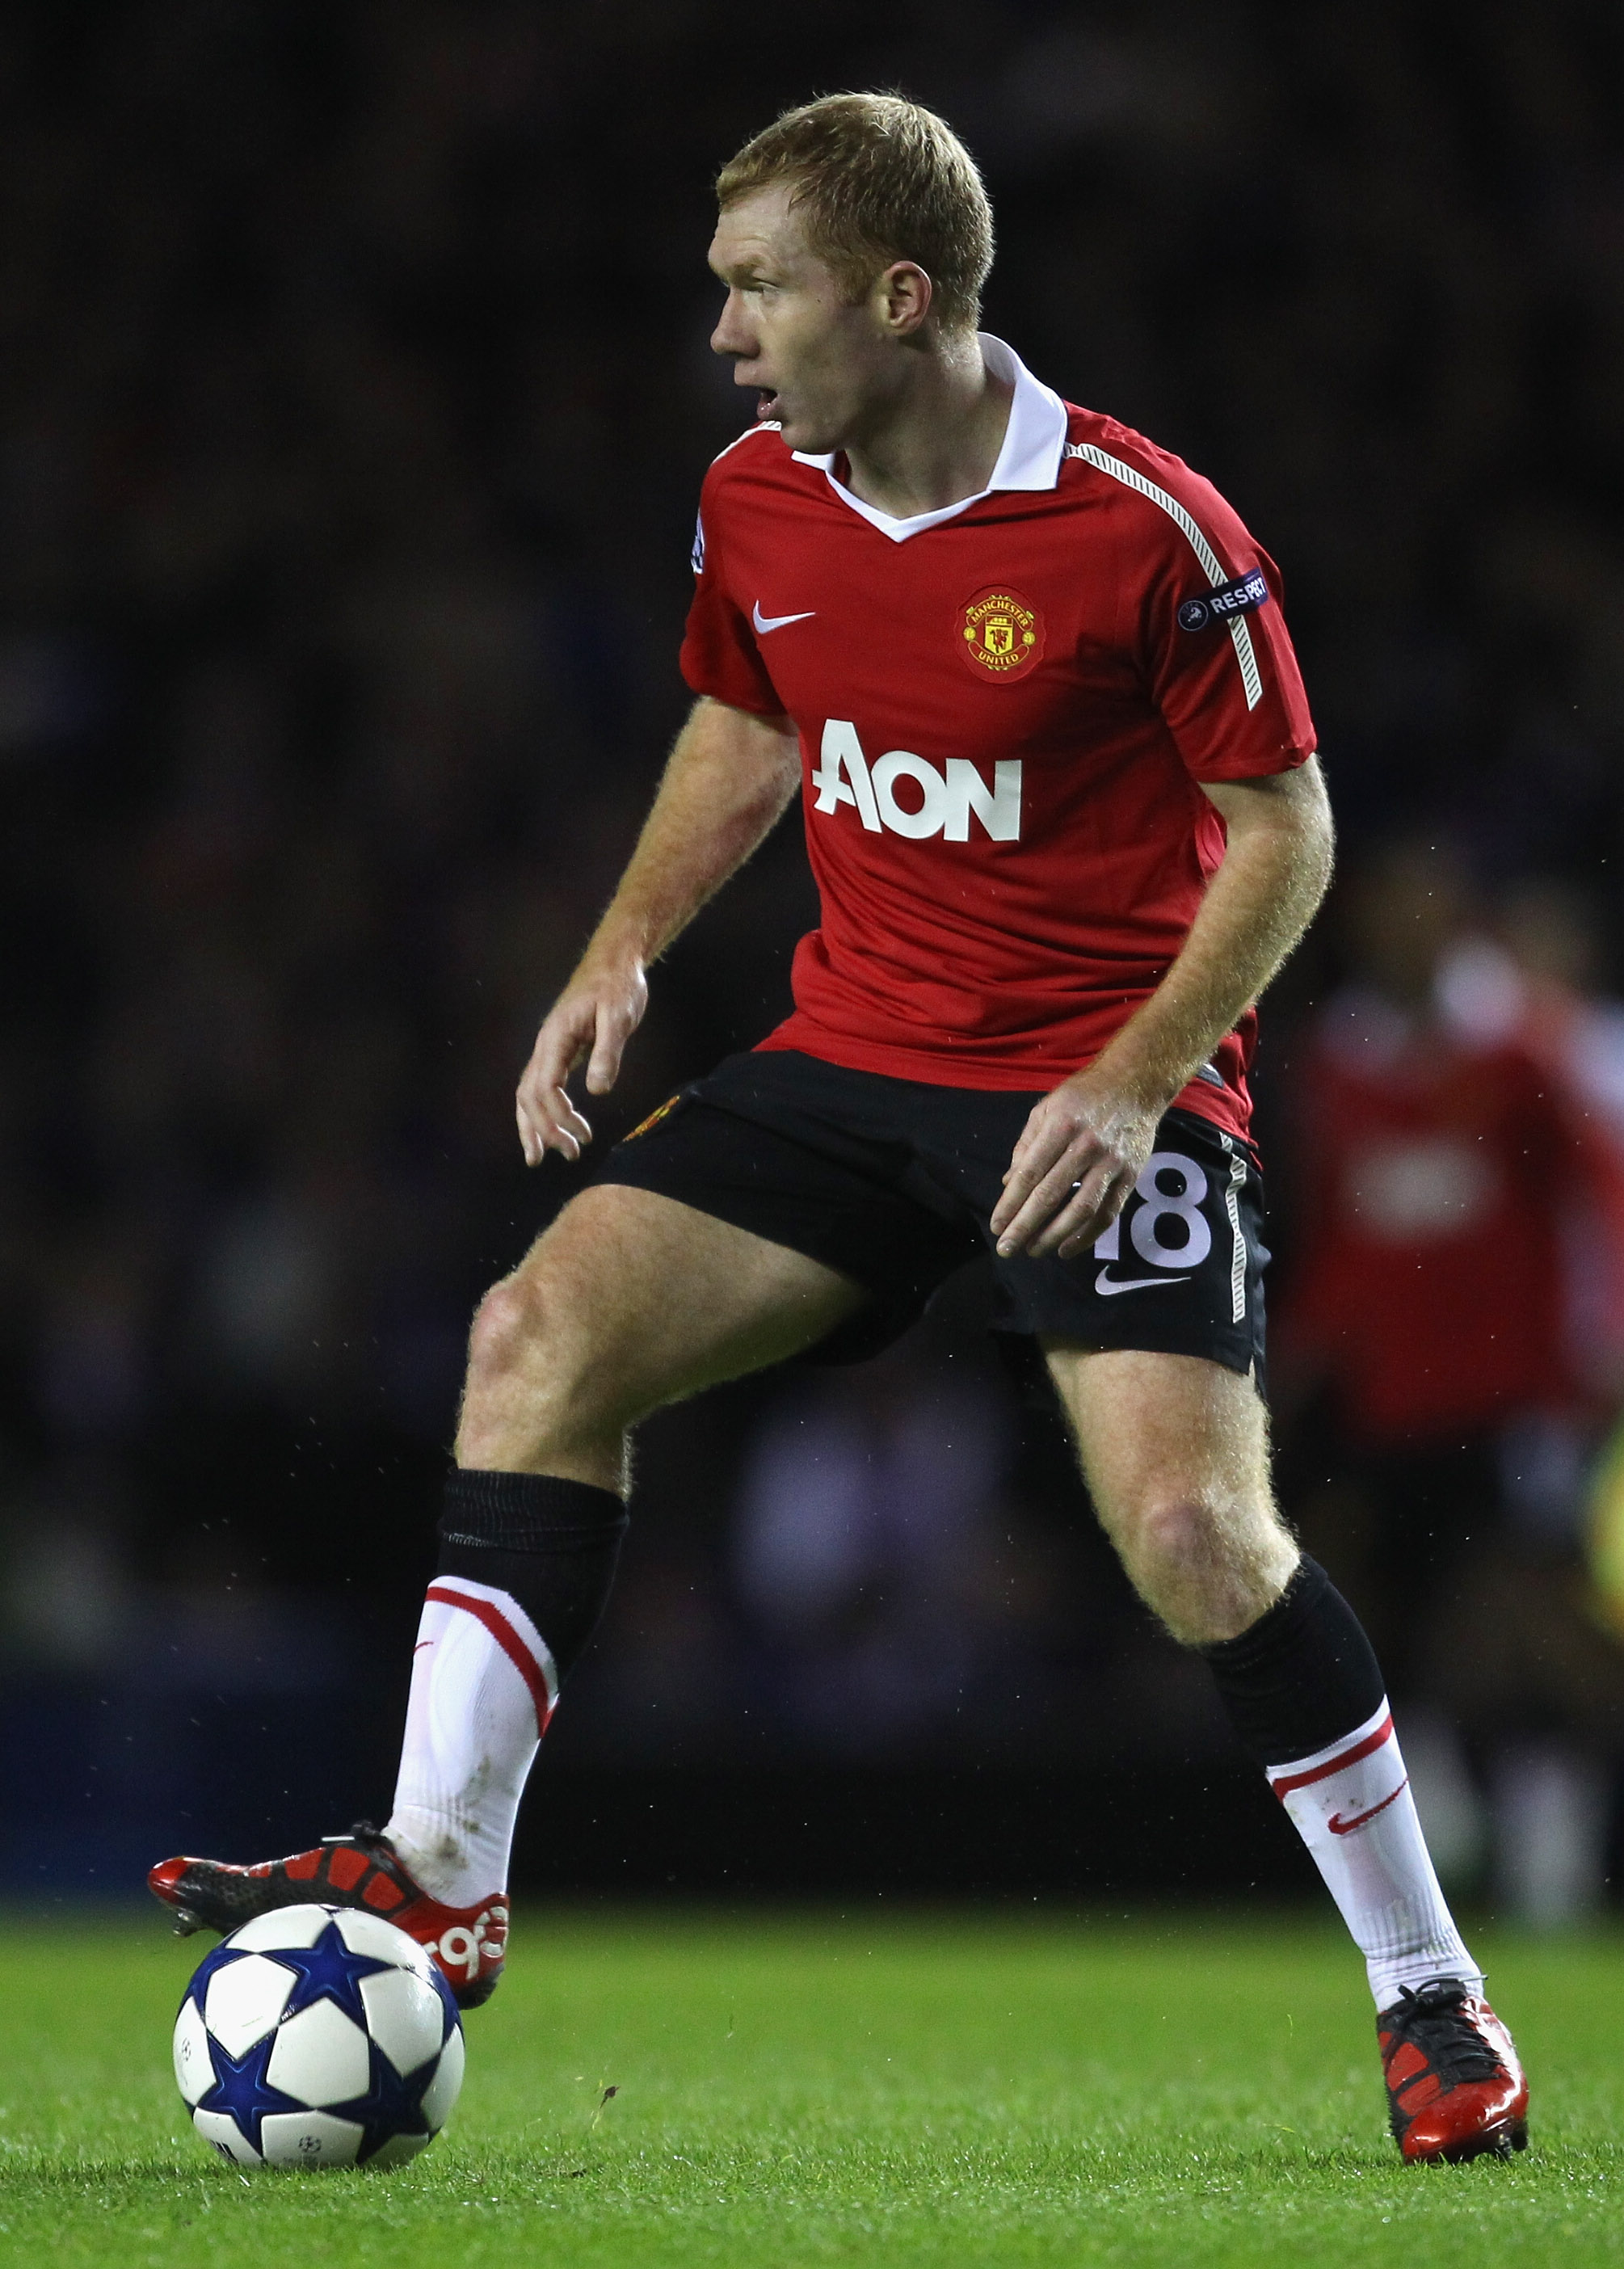 GLASGOW, SCOTLAND - NOVEMBER 24:  Paul Scholes of Manchester United during the UEFA Champions League Group C match between Glasgow Rangers and Manchester United at Ibrox on November 24, 2010 in Glasgow, Scotland.  (Photo by Alex Livesey/Getty Images)